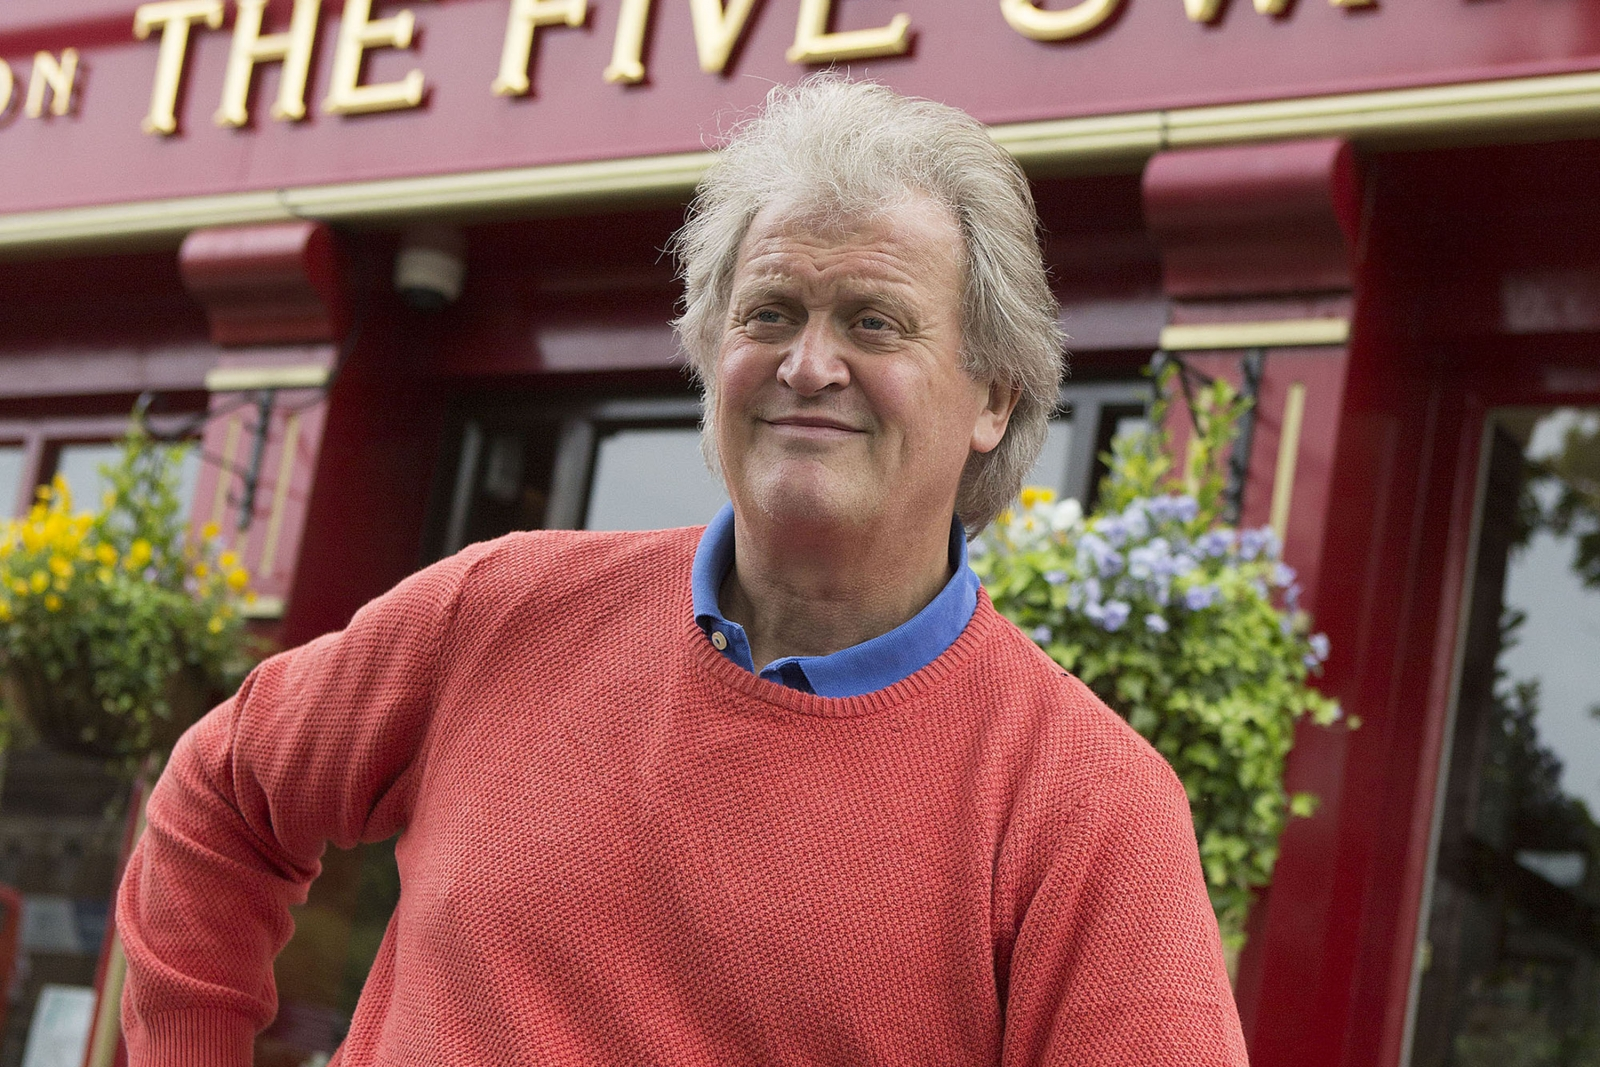 Brexit boss Tim Martin bans Jagermeister, French brandy at 880 JD Wetherspoon pubs - Dotemirates